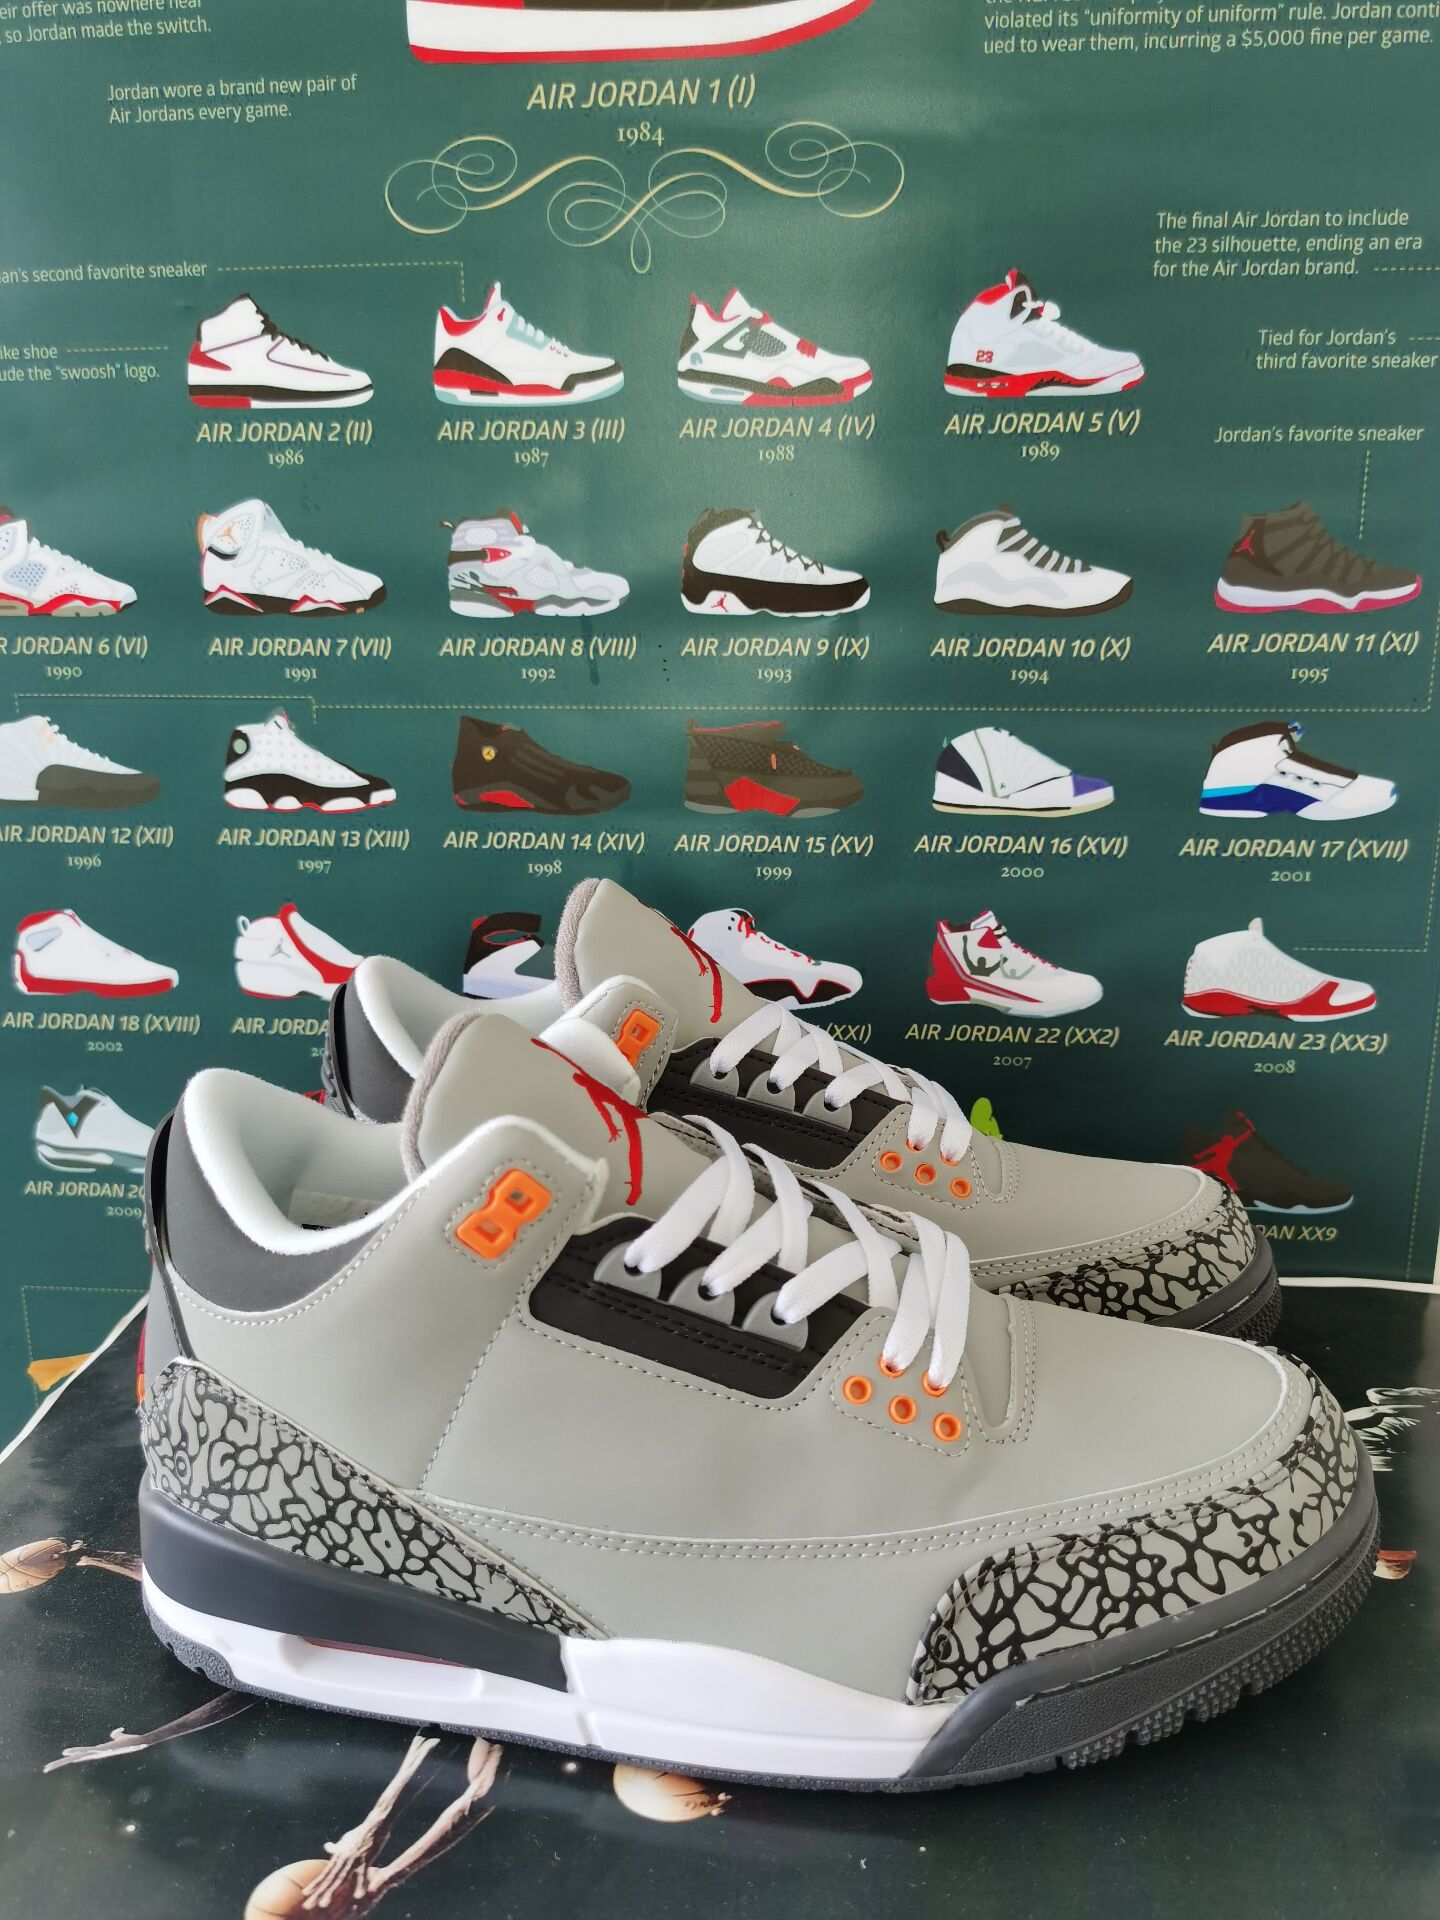 2020 Air Jordan 3 Cool Grey Orange Shoes